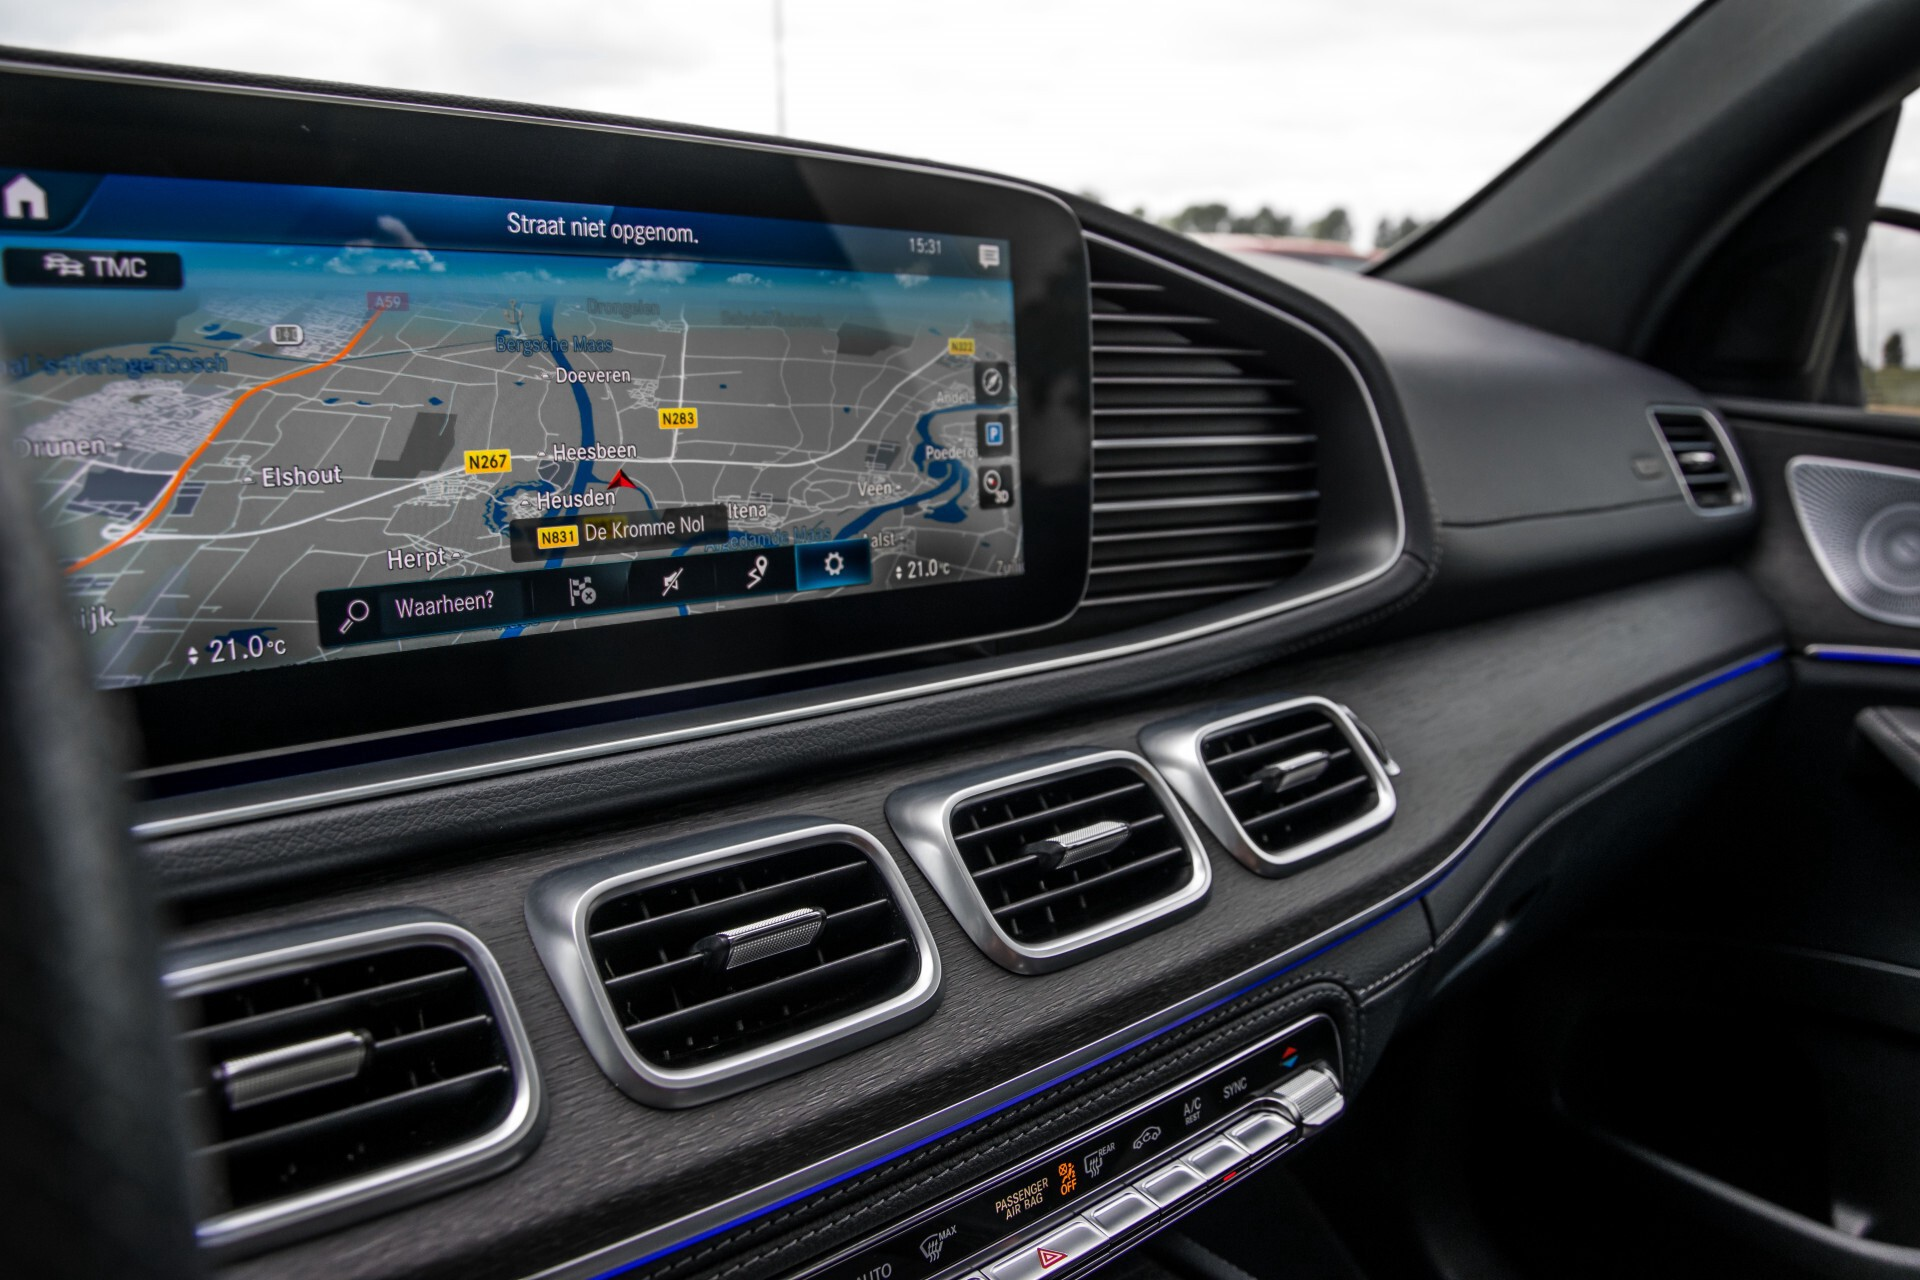 Mercedes-Benz GLE 400 d 4-M Luchtvering/Distronic/Keyless/HUD/Burmester/Nappa/360 camera/Panorama Aut9 Foto 22